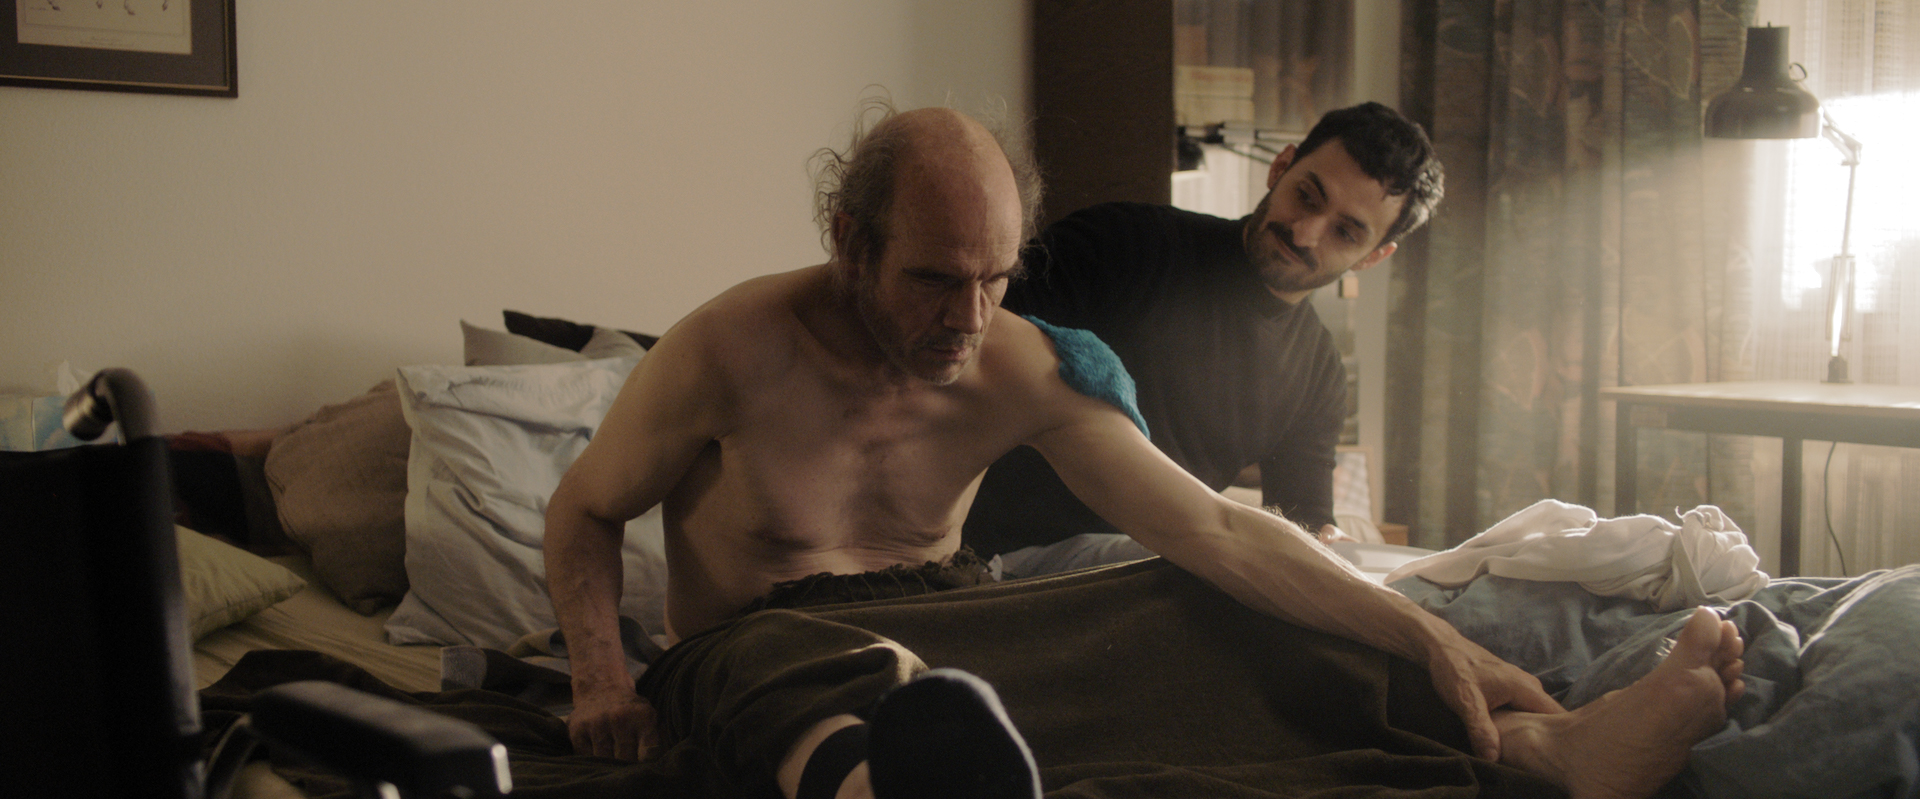 Manfred Liechti and Alireza Bayram in Eating the Silence (2021)